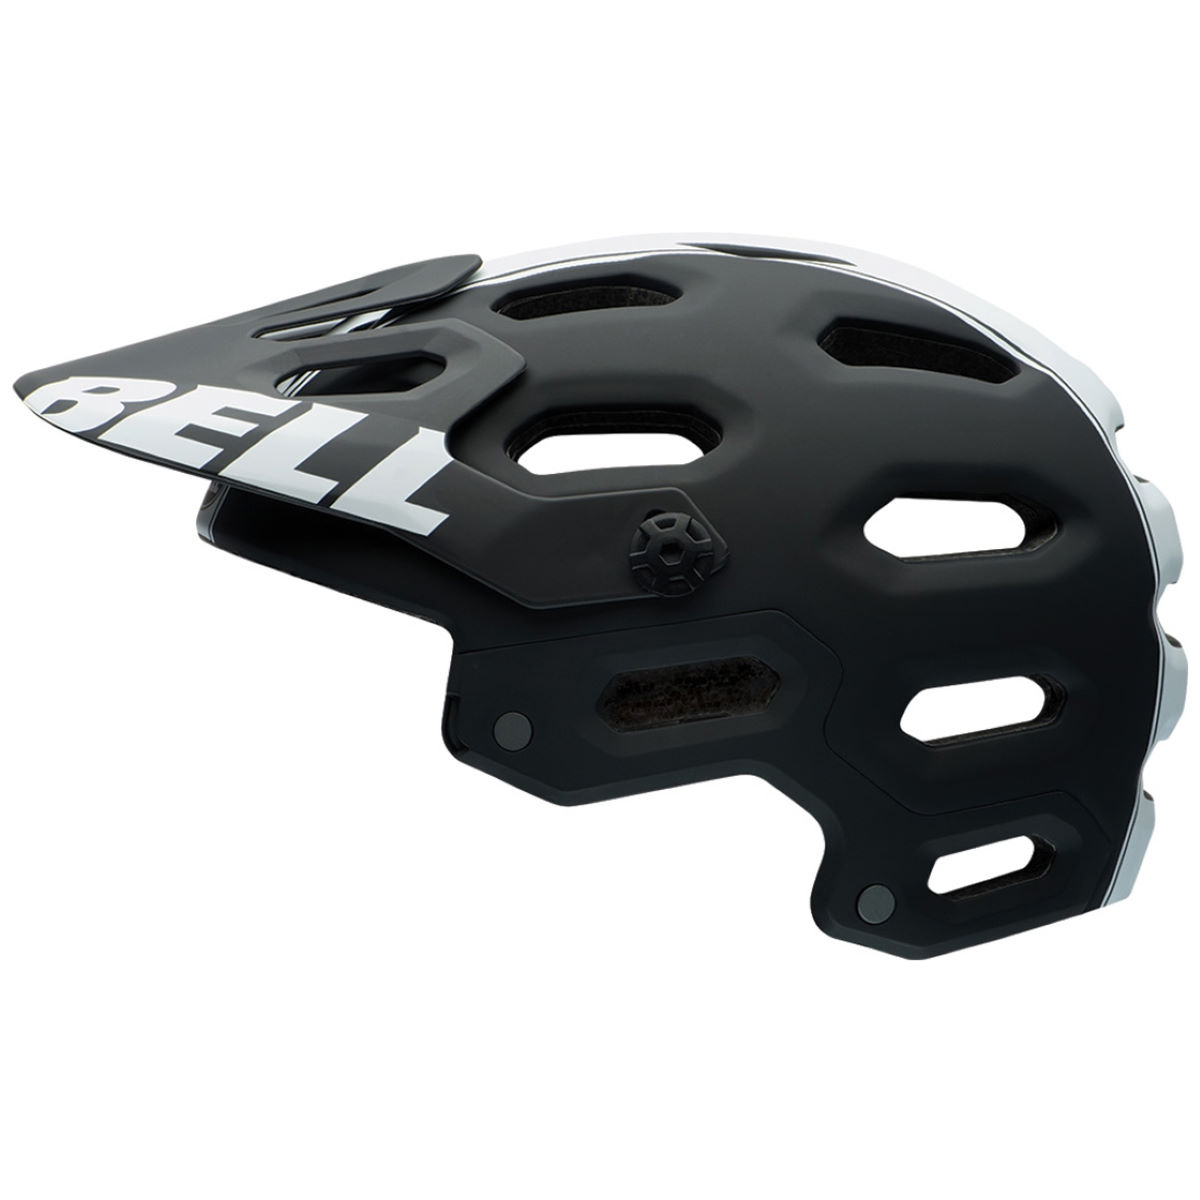 Casque VTT Bell Super 2 - L Matt Black/White Casques VTT